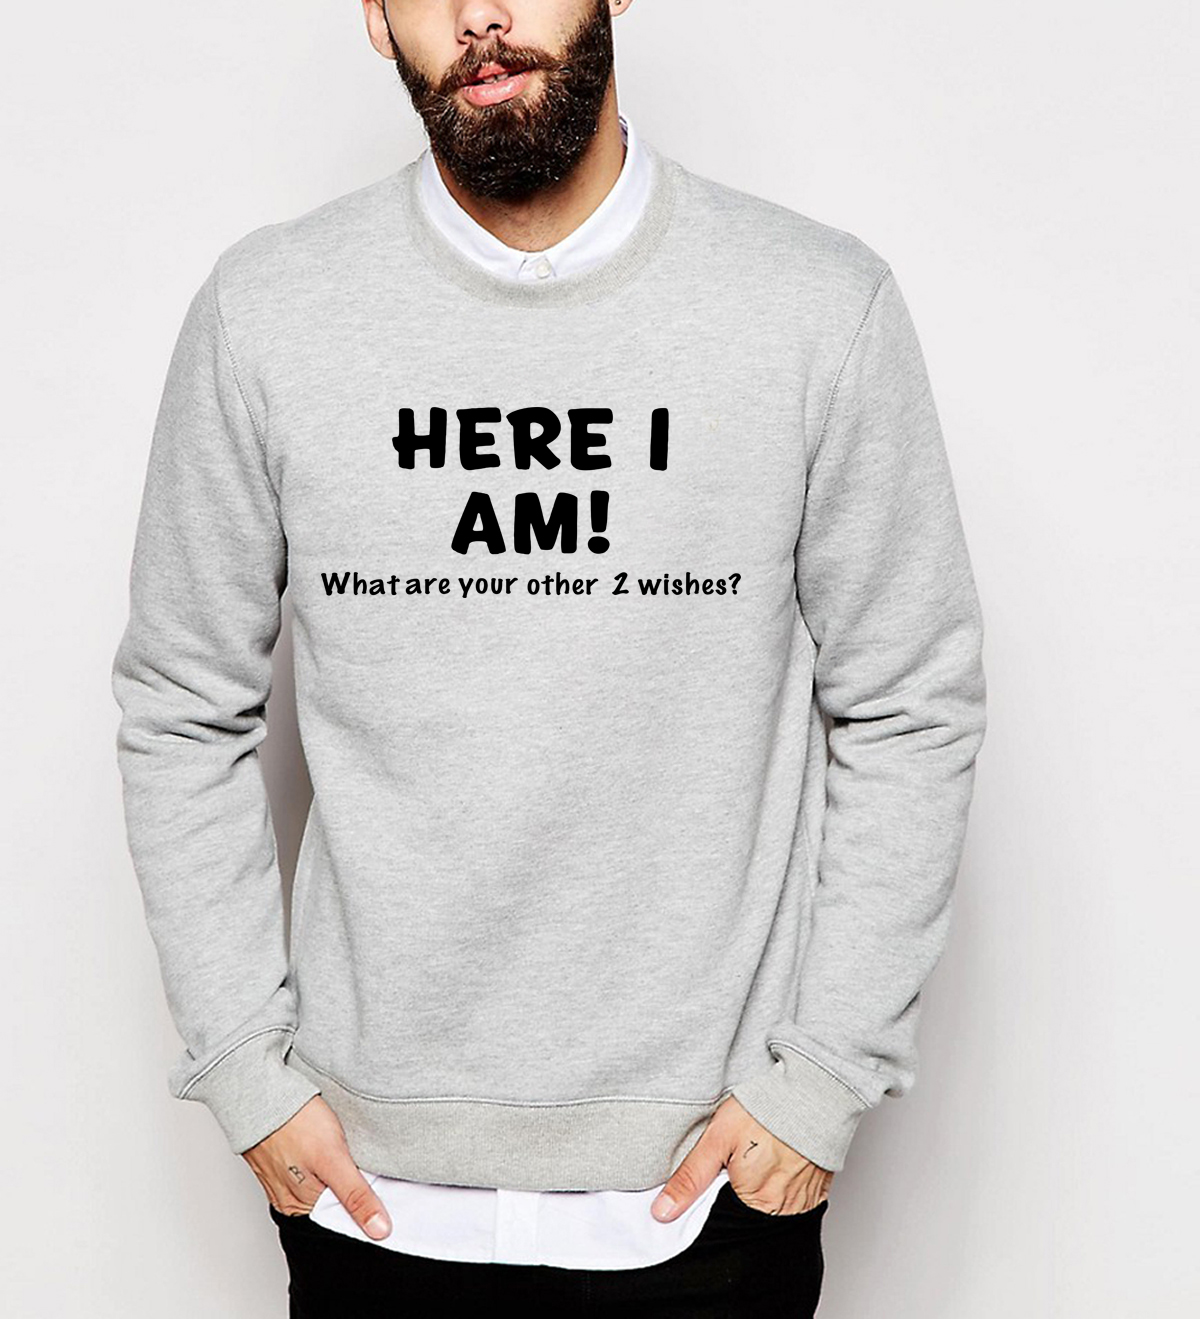 Here I Am What Are Your Other 2 Wishes funny clothing men 2019 new autumn sweatshirts winter hip hop hoodies fitness tracksuits